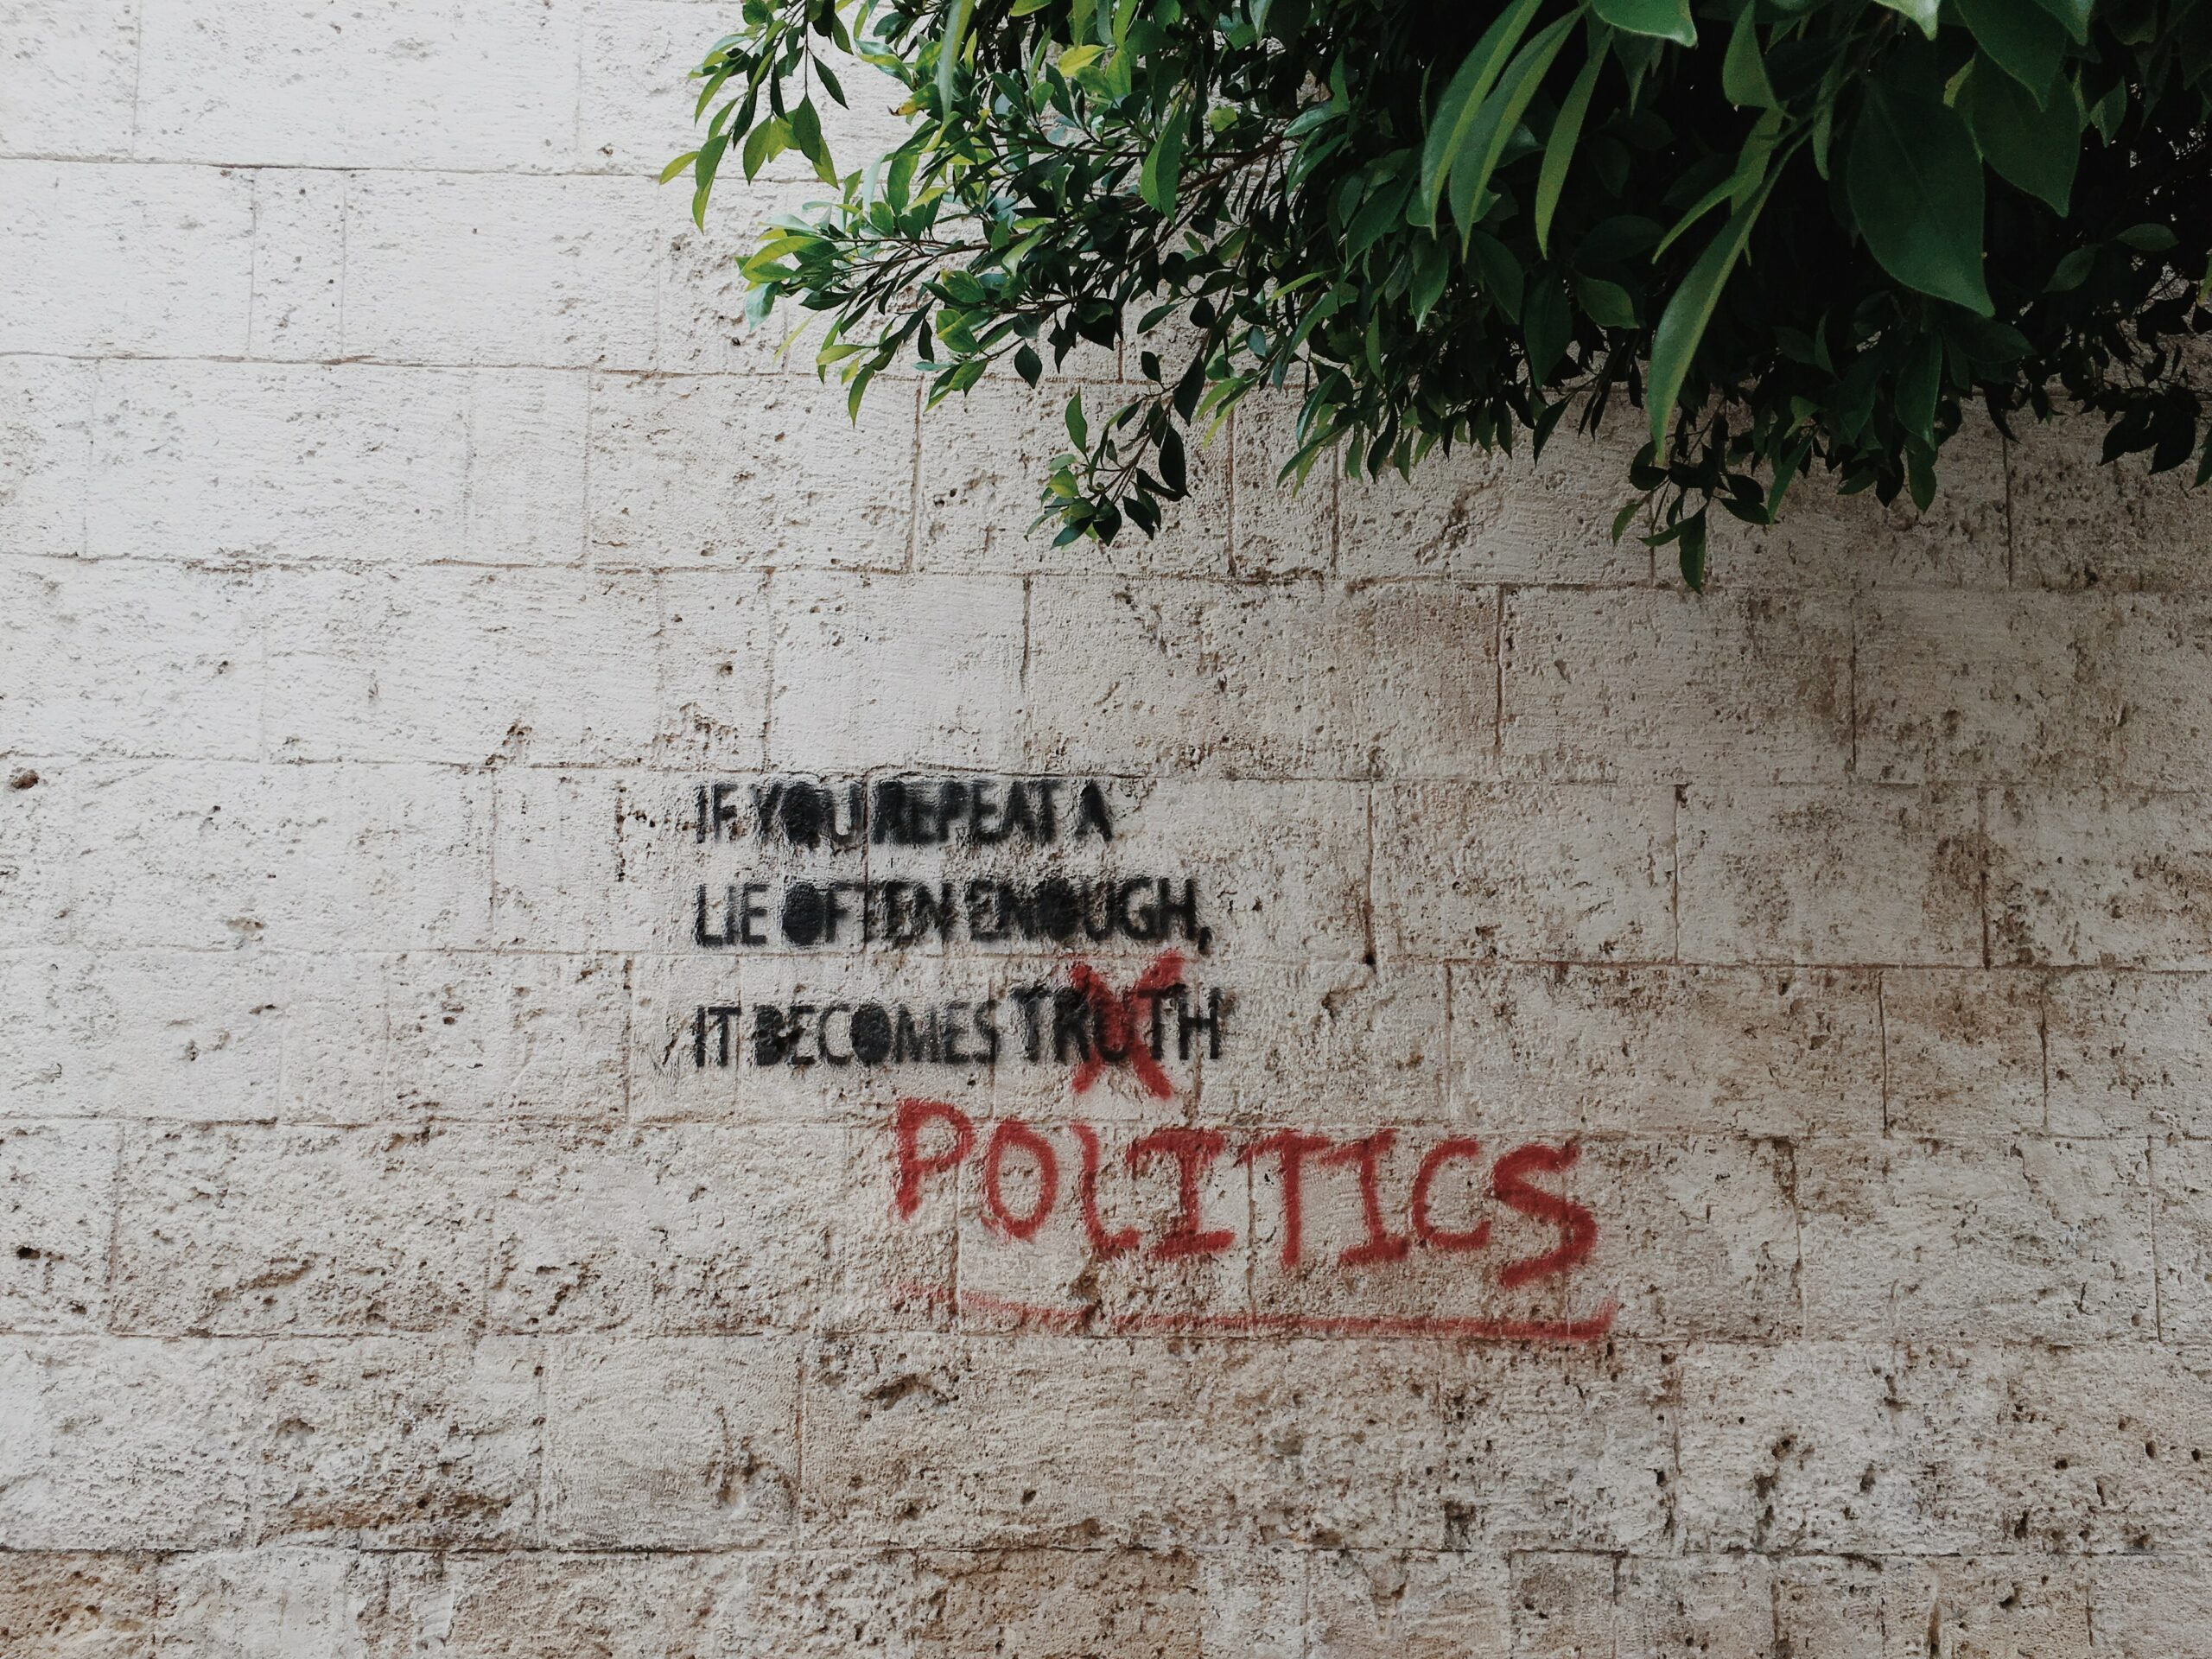 If you repeat a lie often enough it becomes truth printed wall taken at daytime